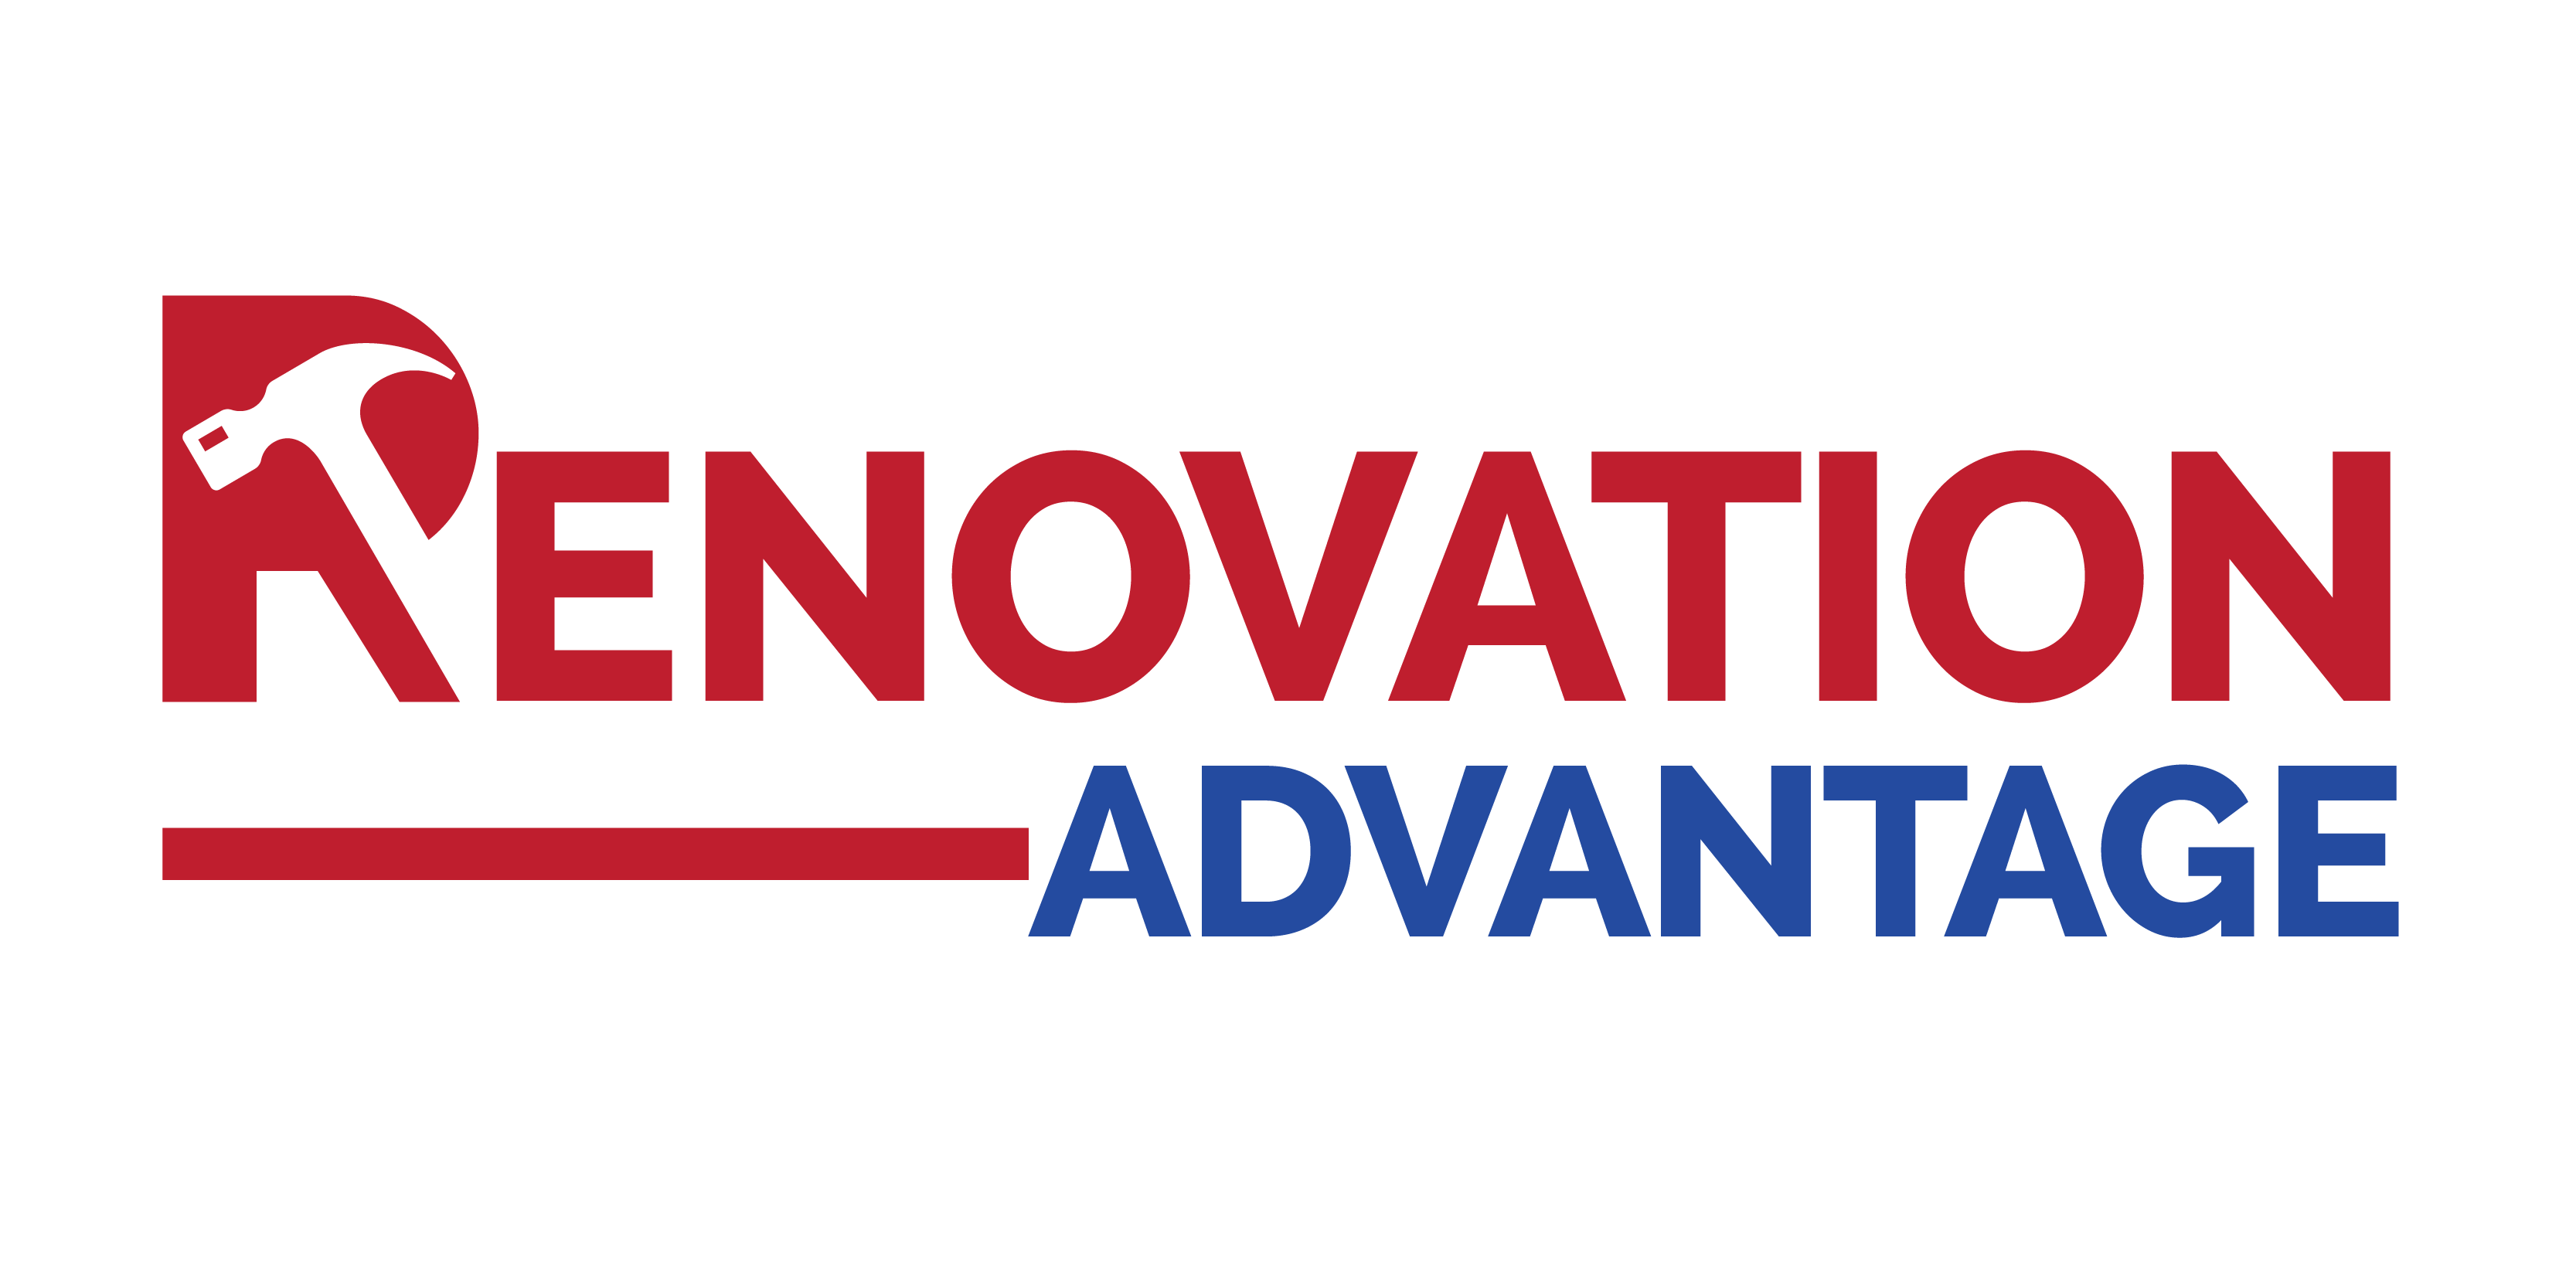 Renovation-Advantage-01.png